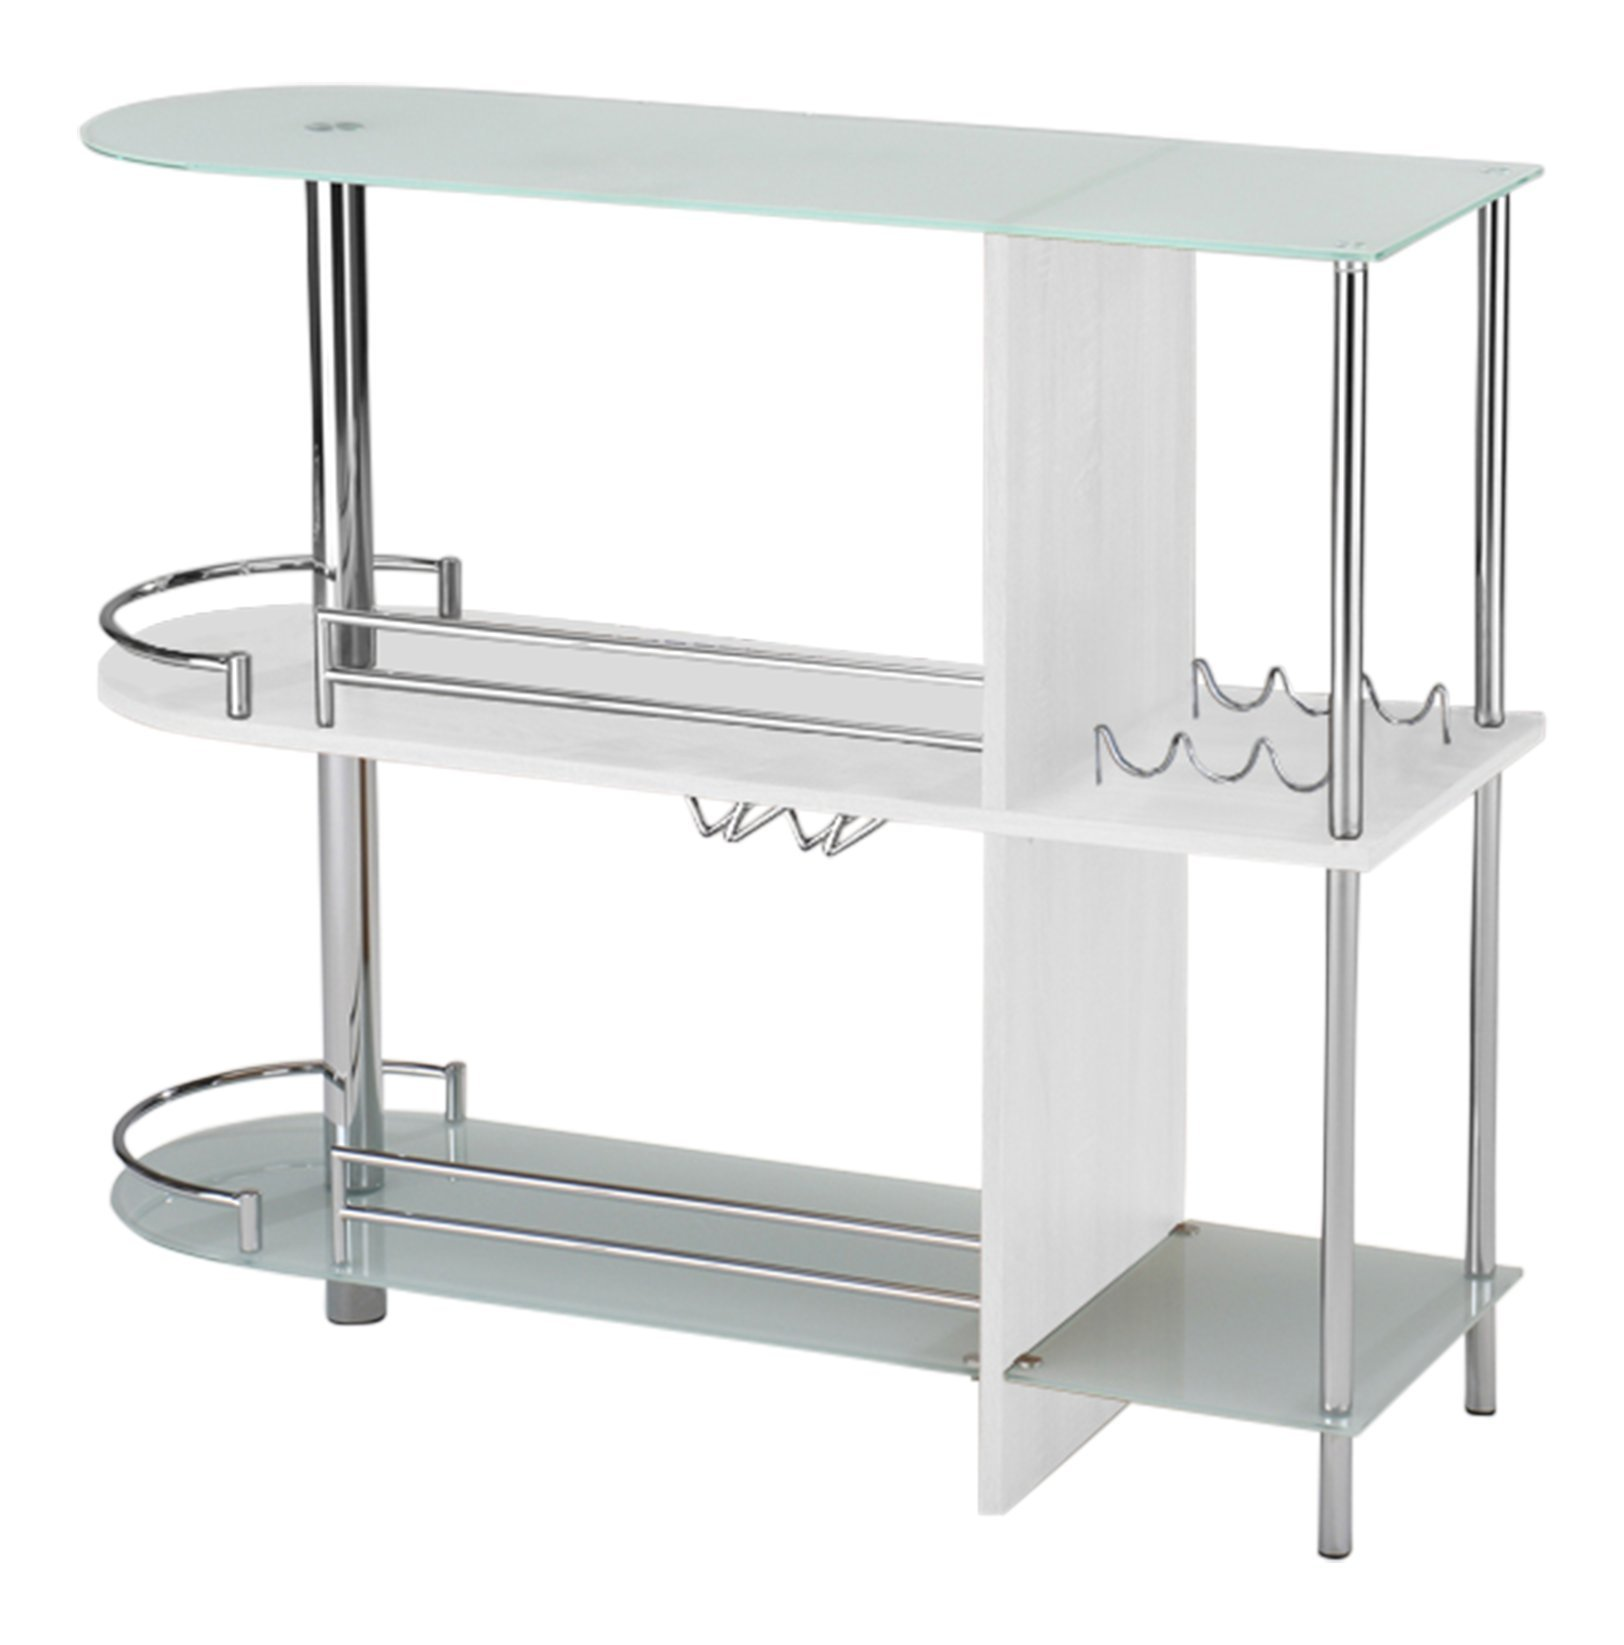 Kings Brand Furniture Bar Table with Two Tempered Glass Shelves, White by Kings Brand Furniture